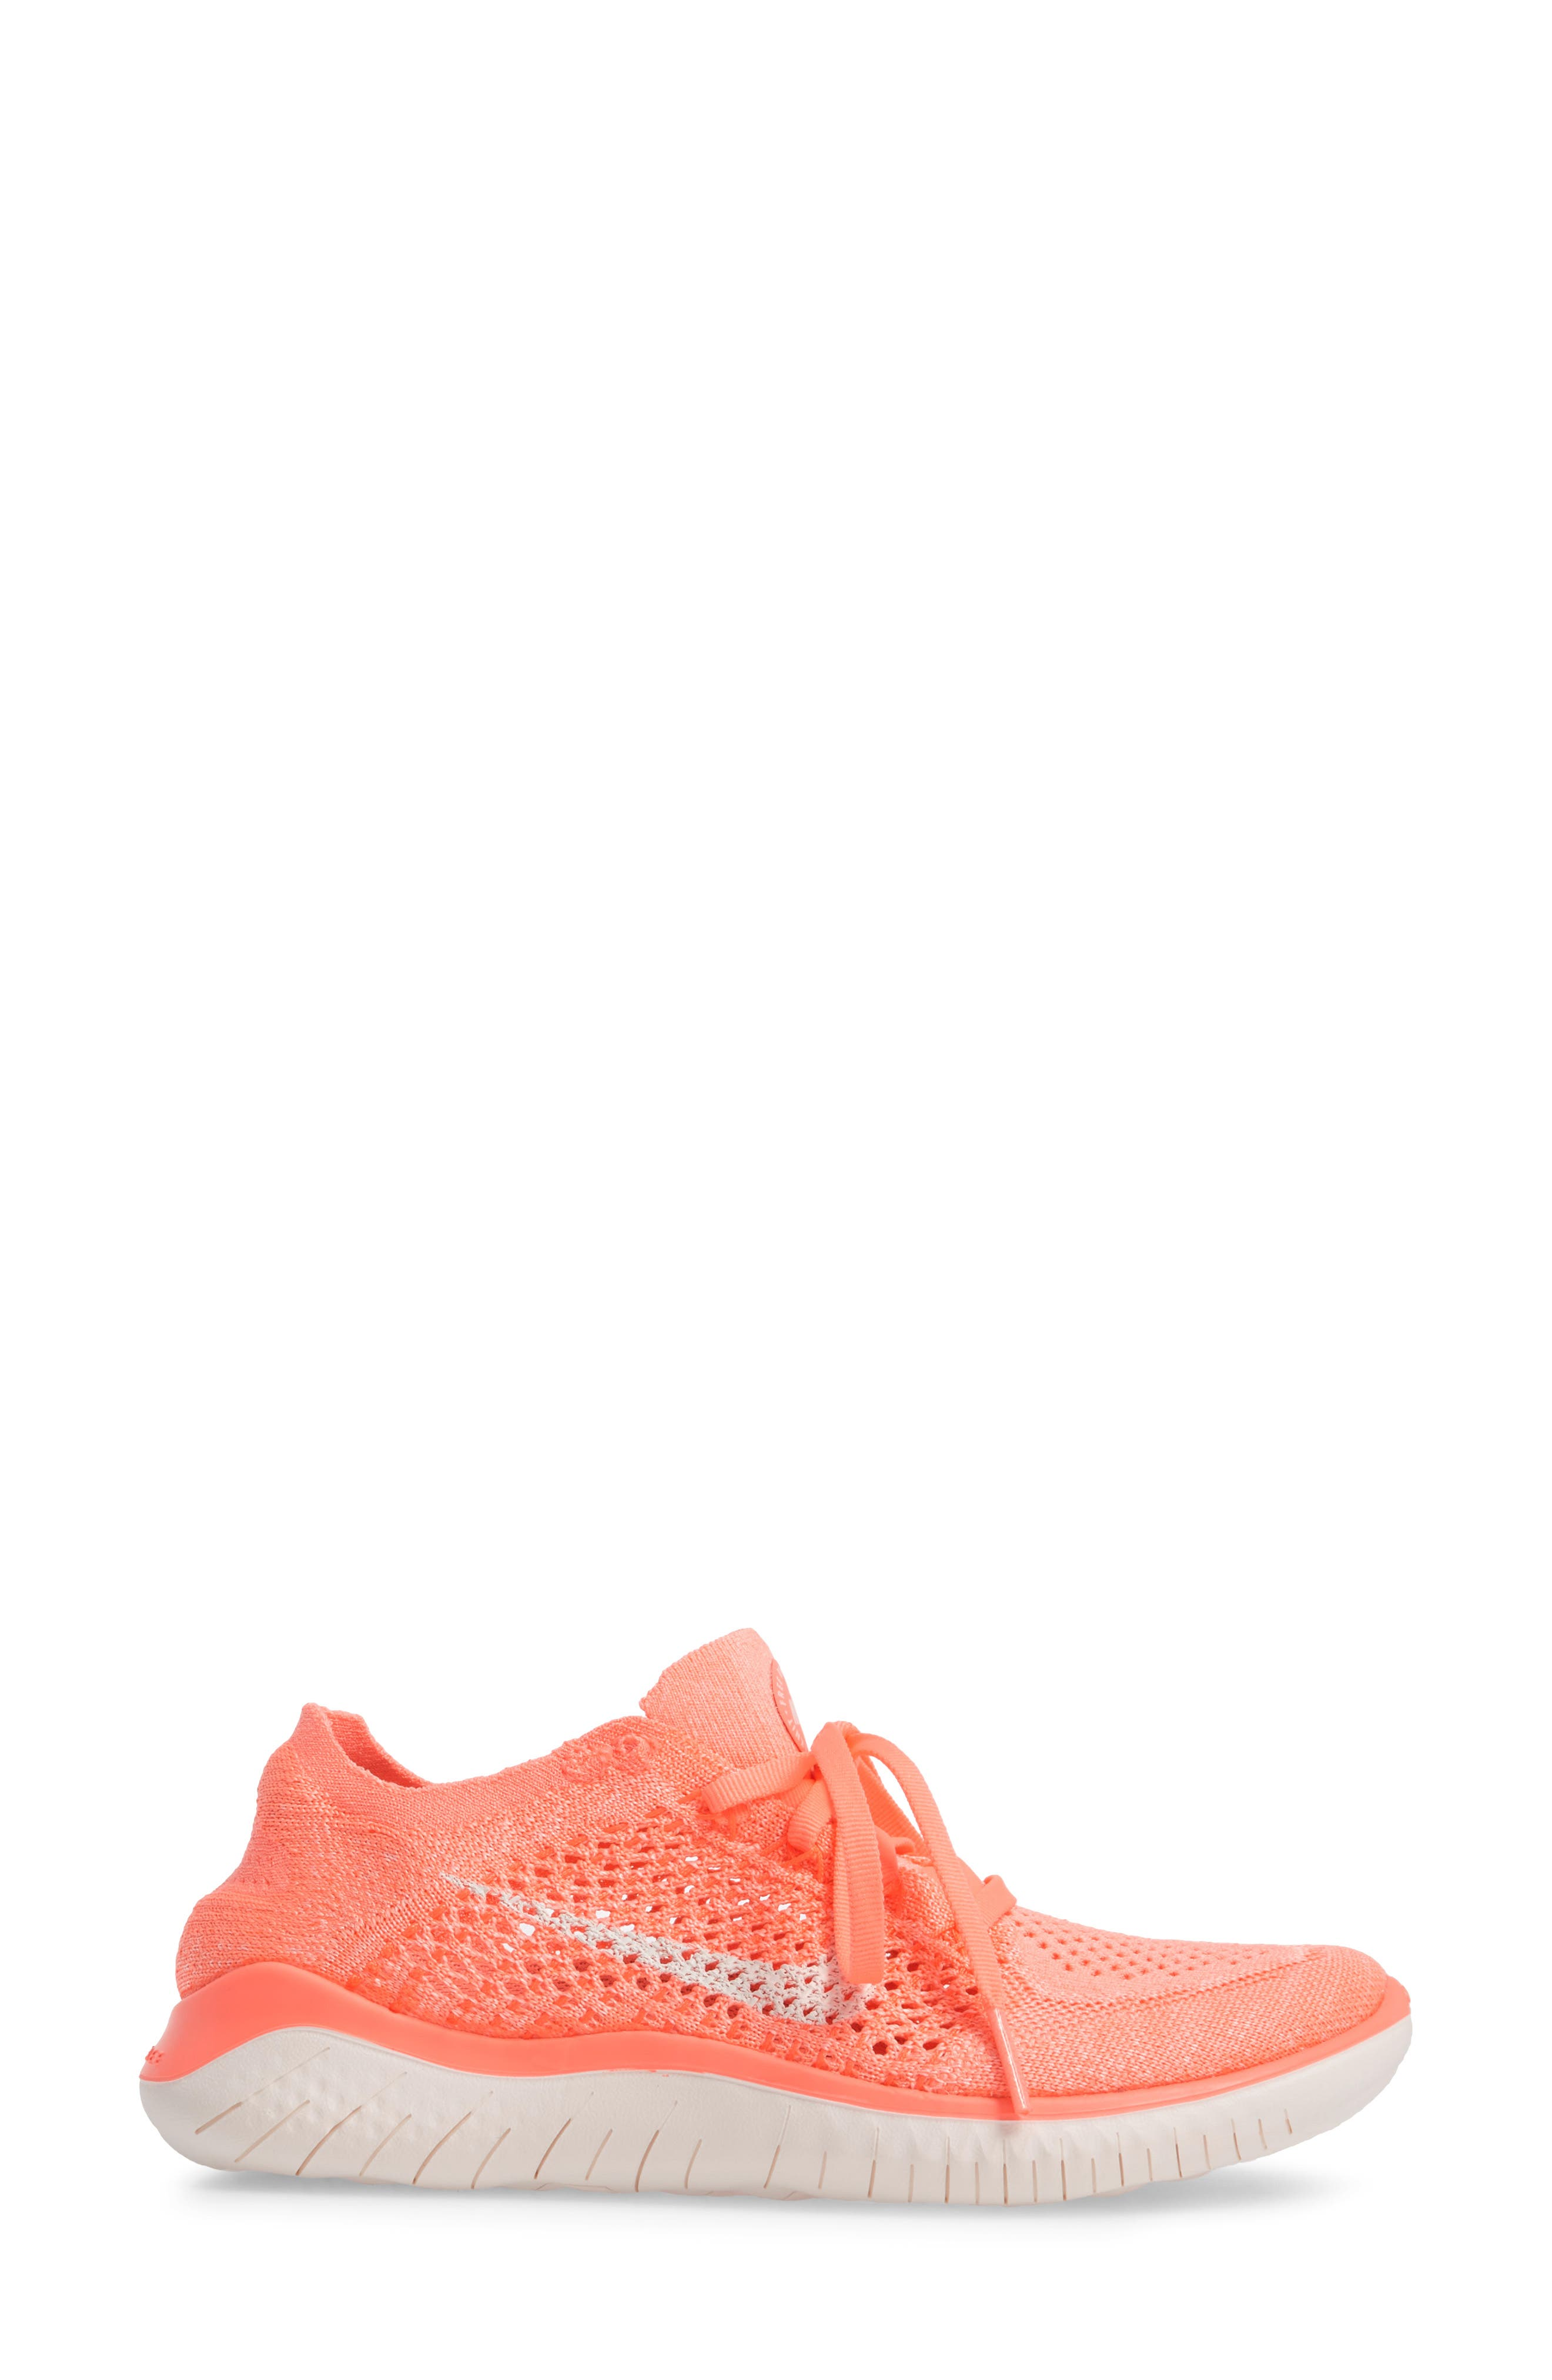 Free RN Flyknit 2018 Running Shoe,                             Alternate thumbnail 33, color,